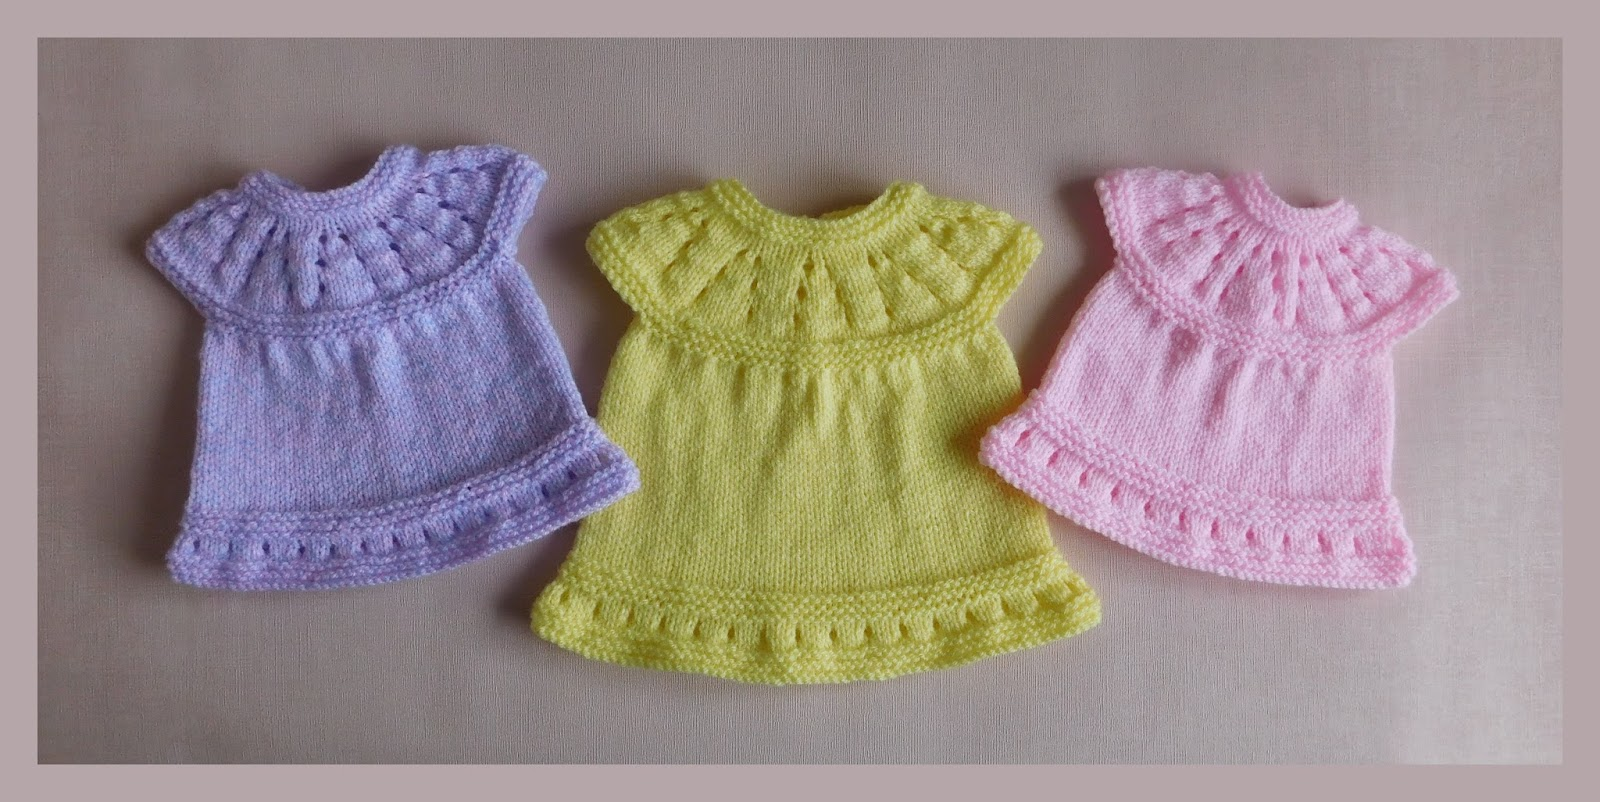 Patterns For Preemie Gowns | www.topsimages.com